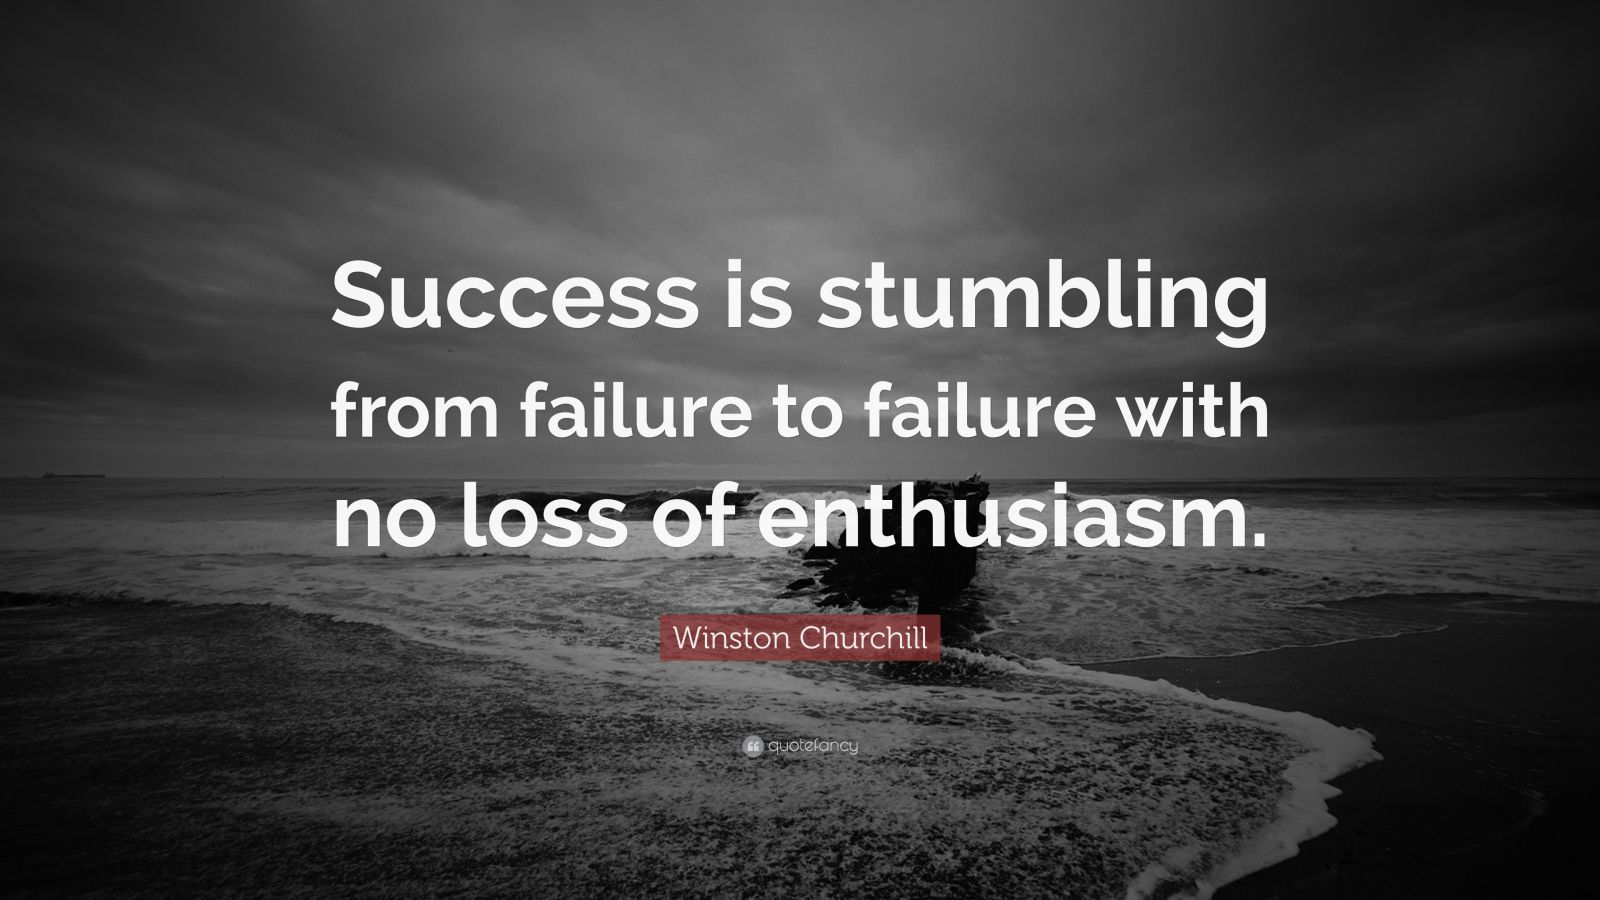 successful entrepreneurship rise of failure Entrepreneurs turn excellent ideas into successful businesses  culture has a  strong influence on risk-taking and tolerance of failure  as japan, china or  korea, are also likely to give rise to businesses run by entrepreneurial leaders  with a.